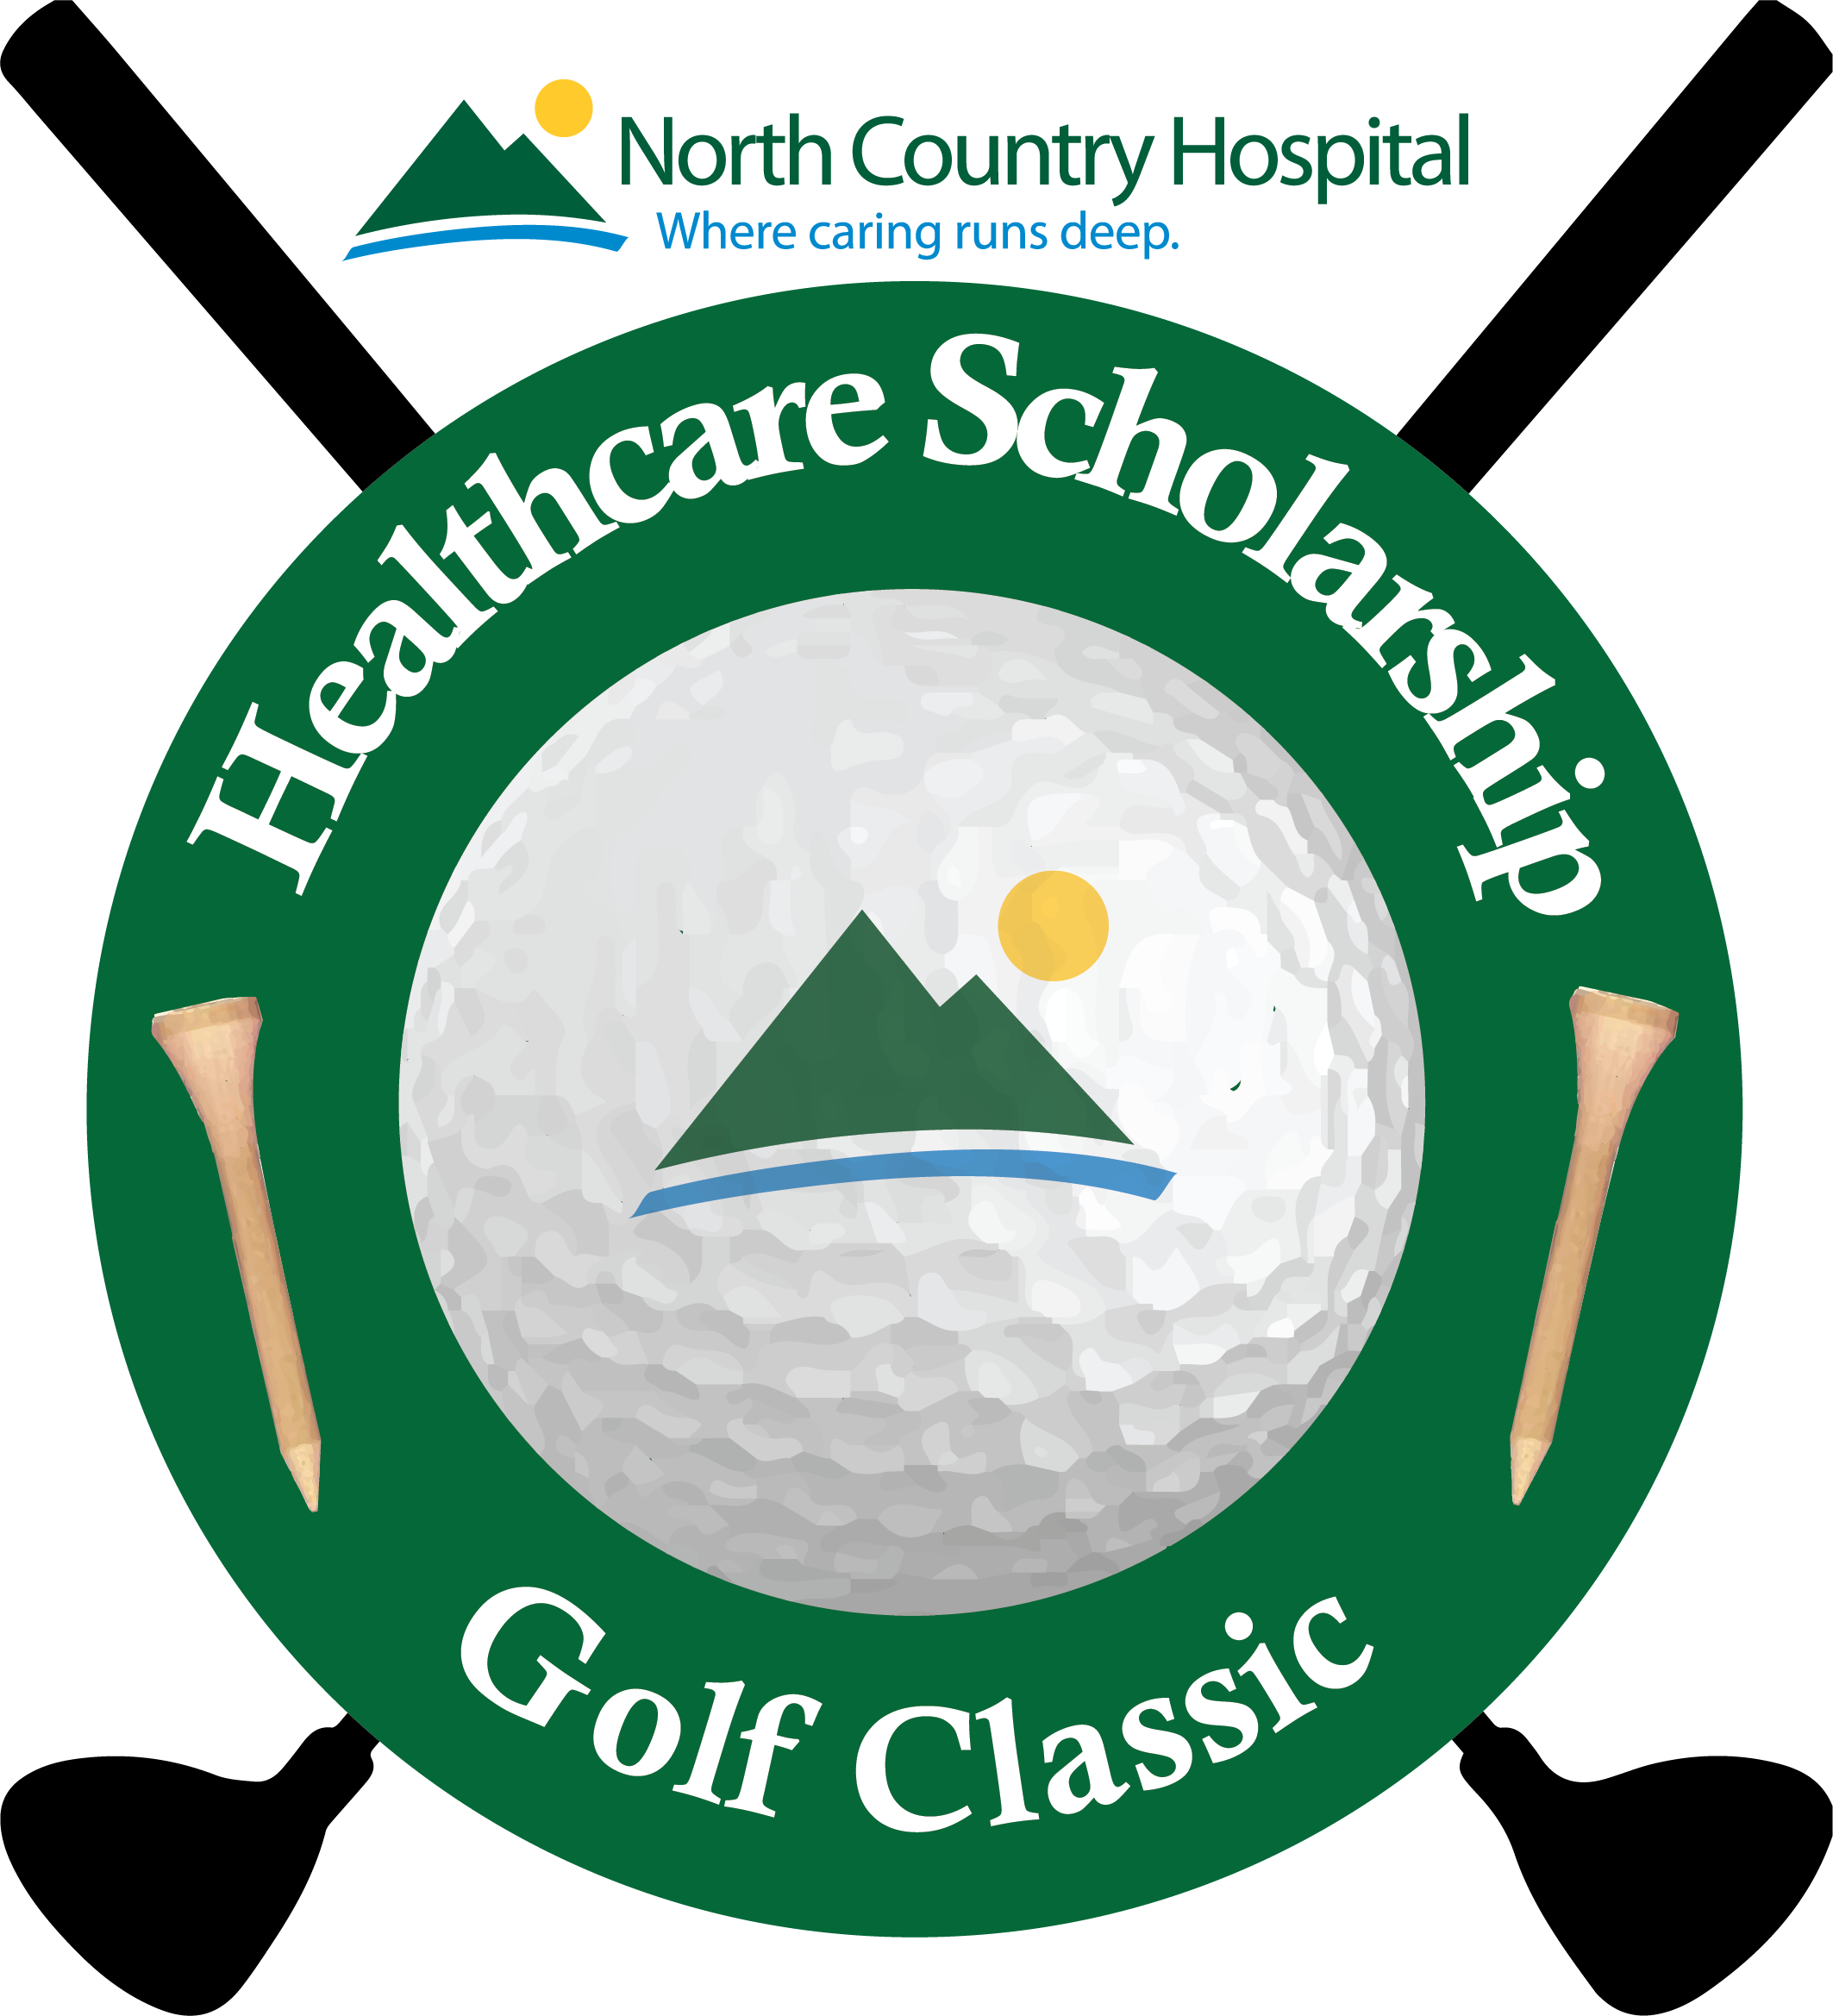 Golf clip tournament.  th annual healthcare graphic royalty free library